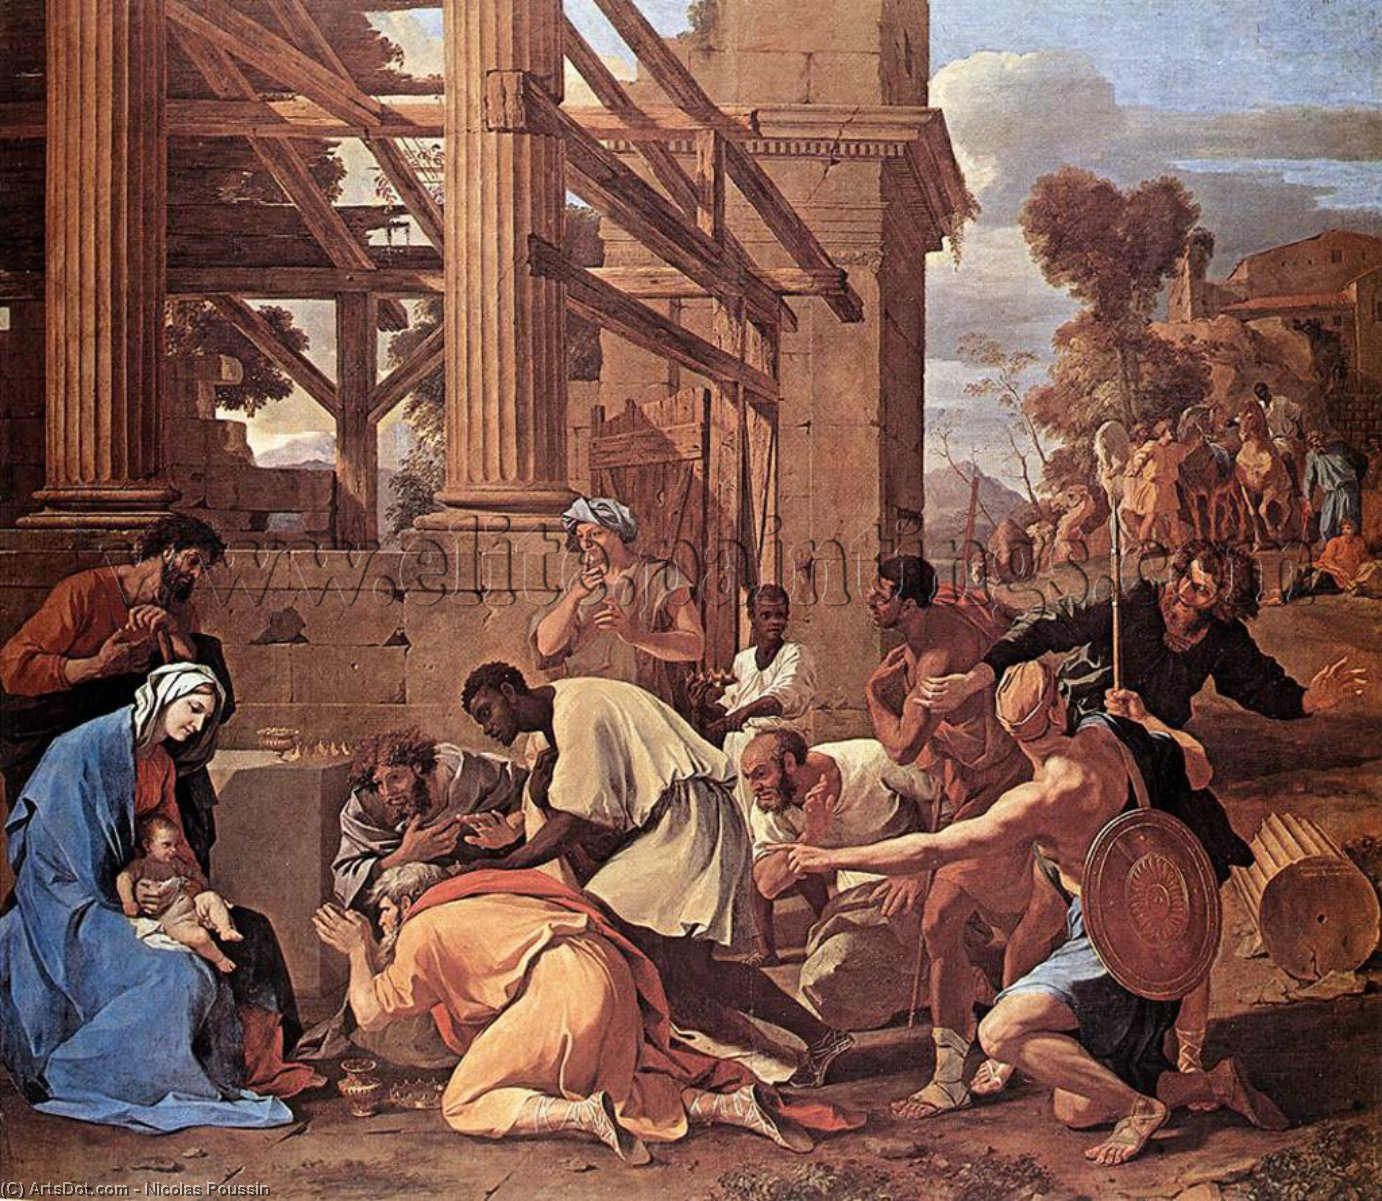 a look at nicolas poussin and the roman influence in france Nicolas poussin was a famous except for a brief period when he served as first painter to the king in france poussin was a there was a distinct influence of.